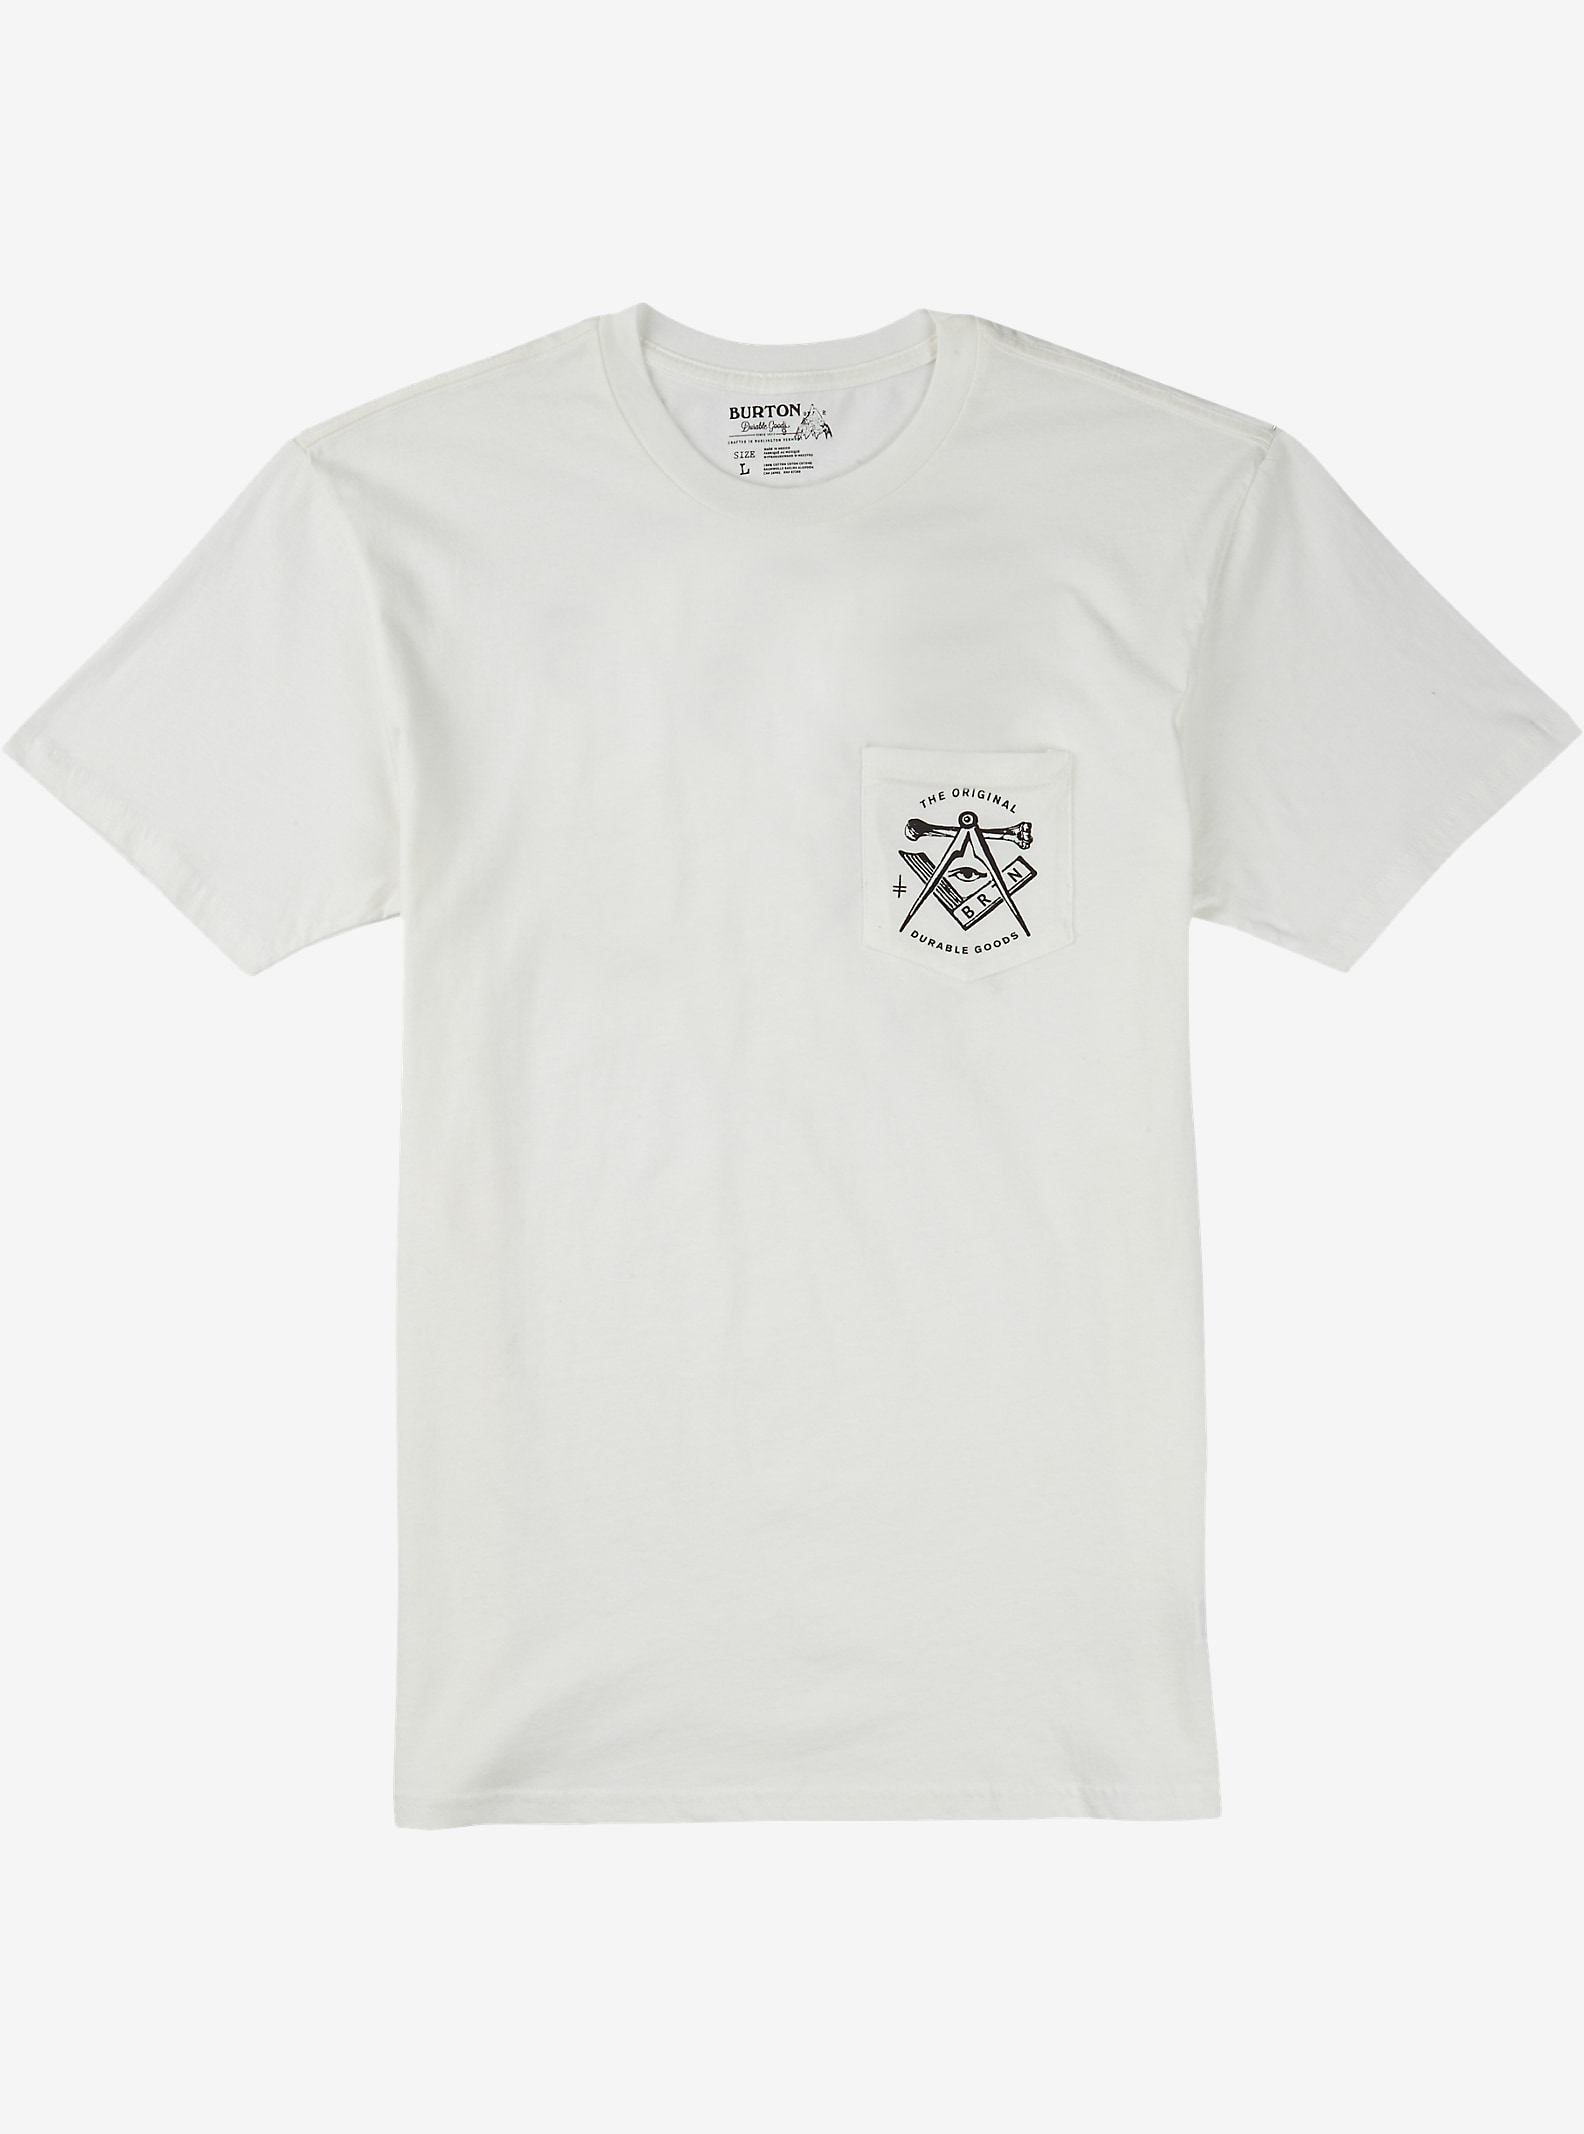 Burton OG Slim Fit Short Sleeve T Shirt shown in Stout White